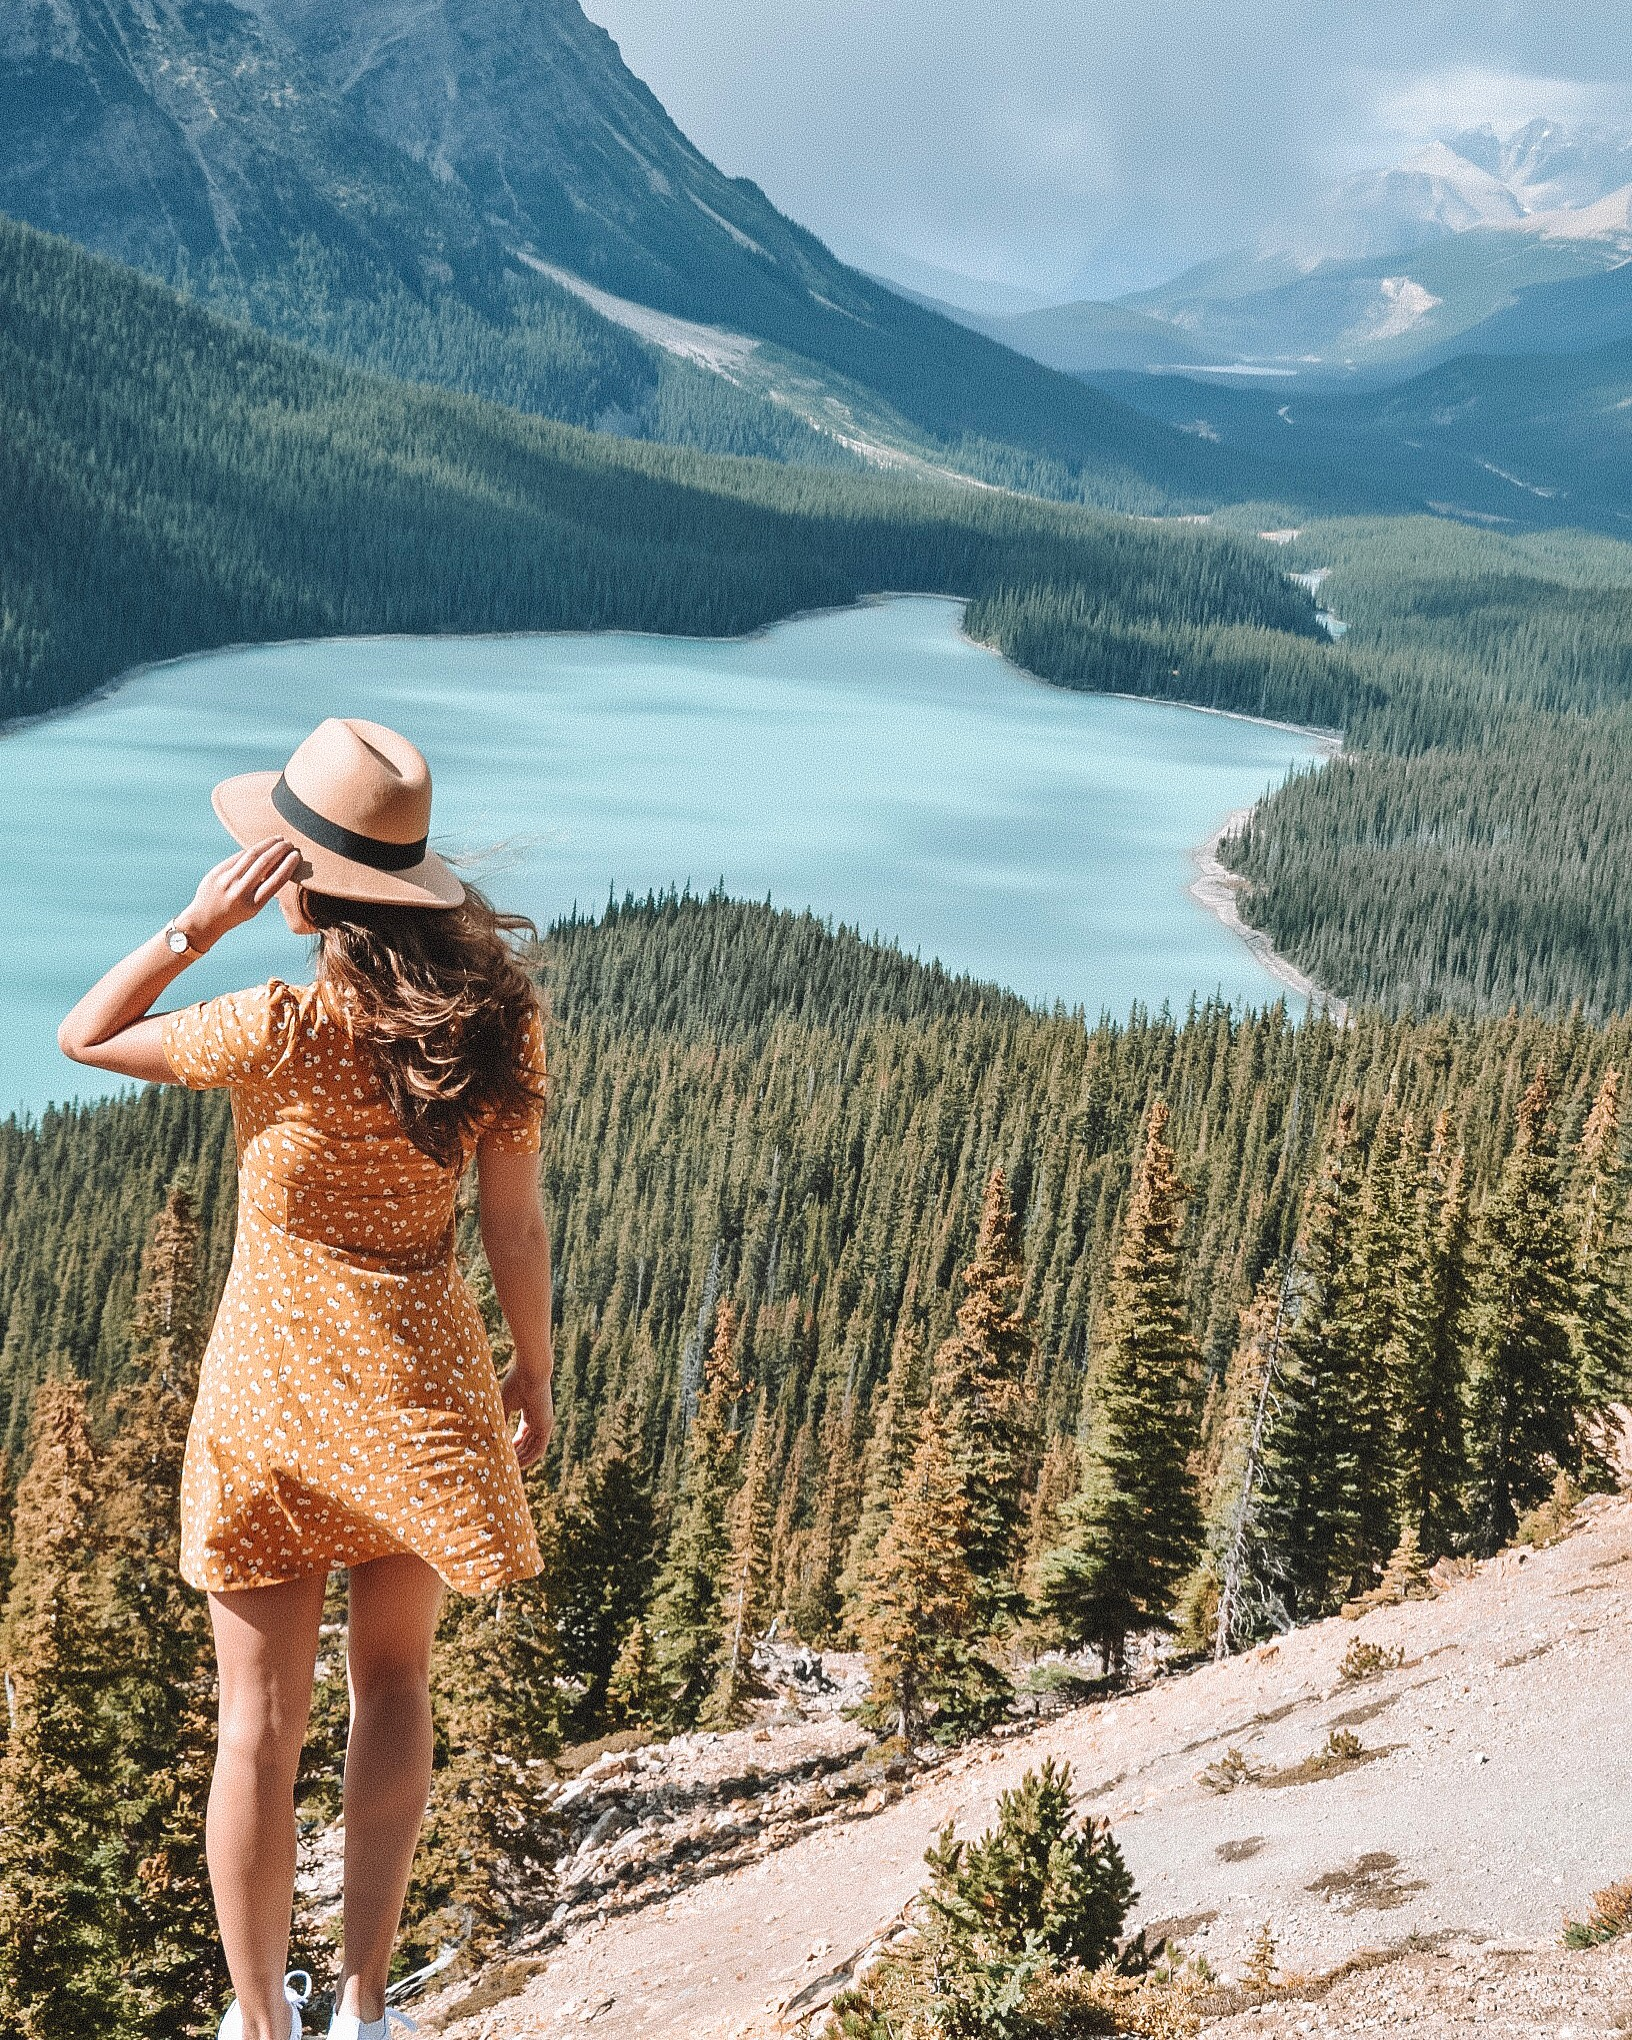 Best Hikes in Banff - Peyto Lake